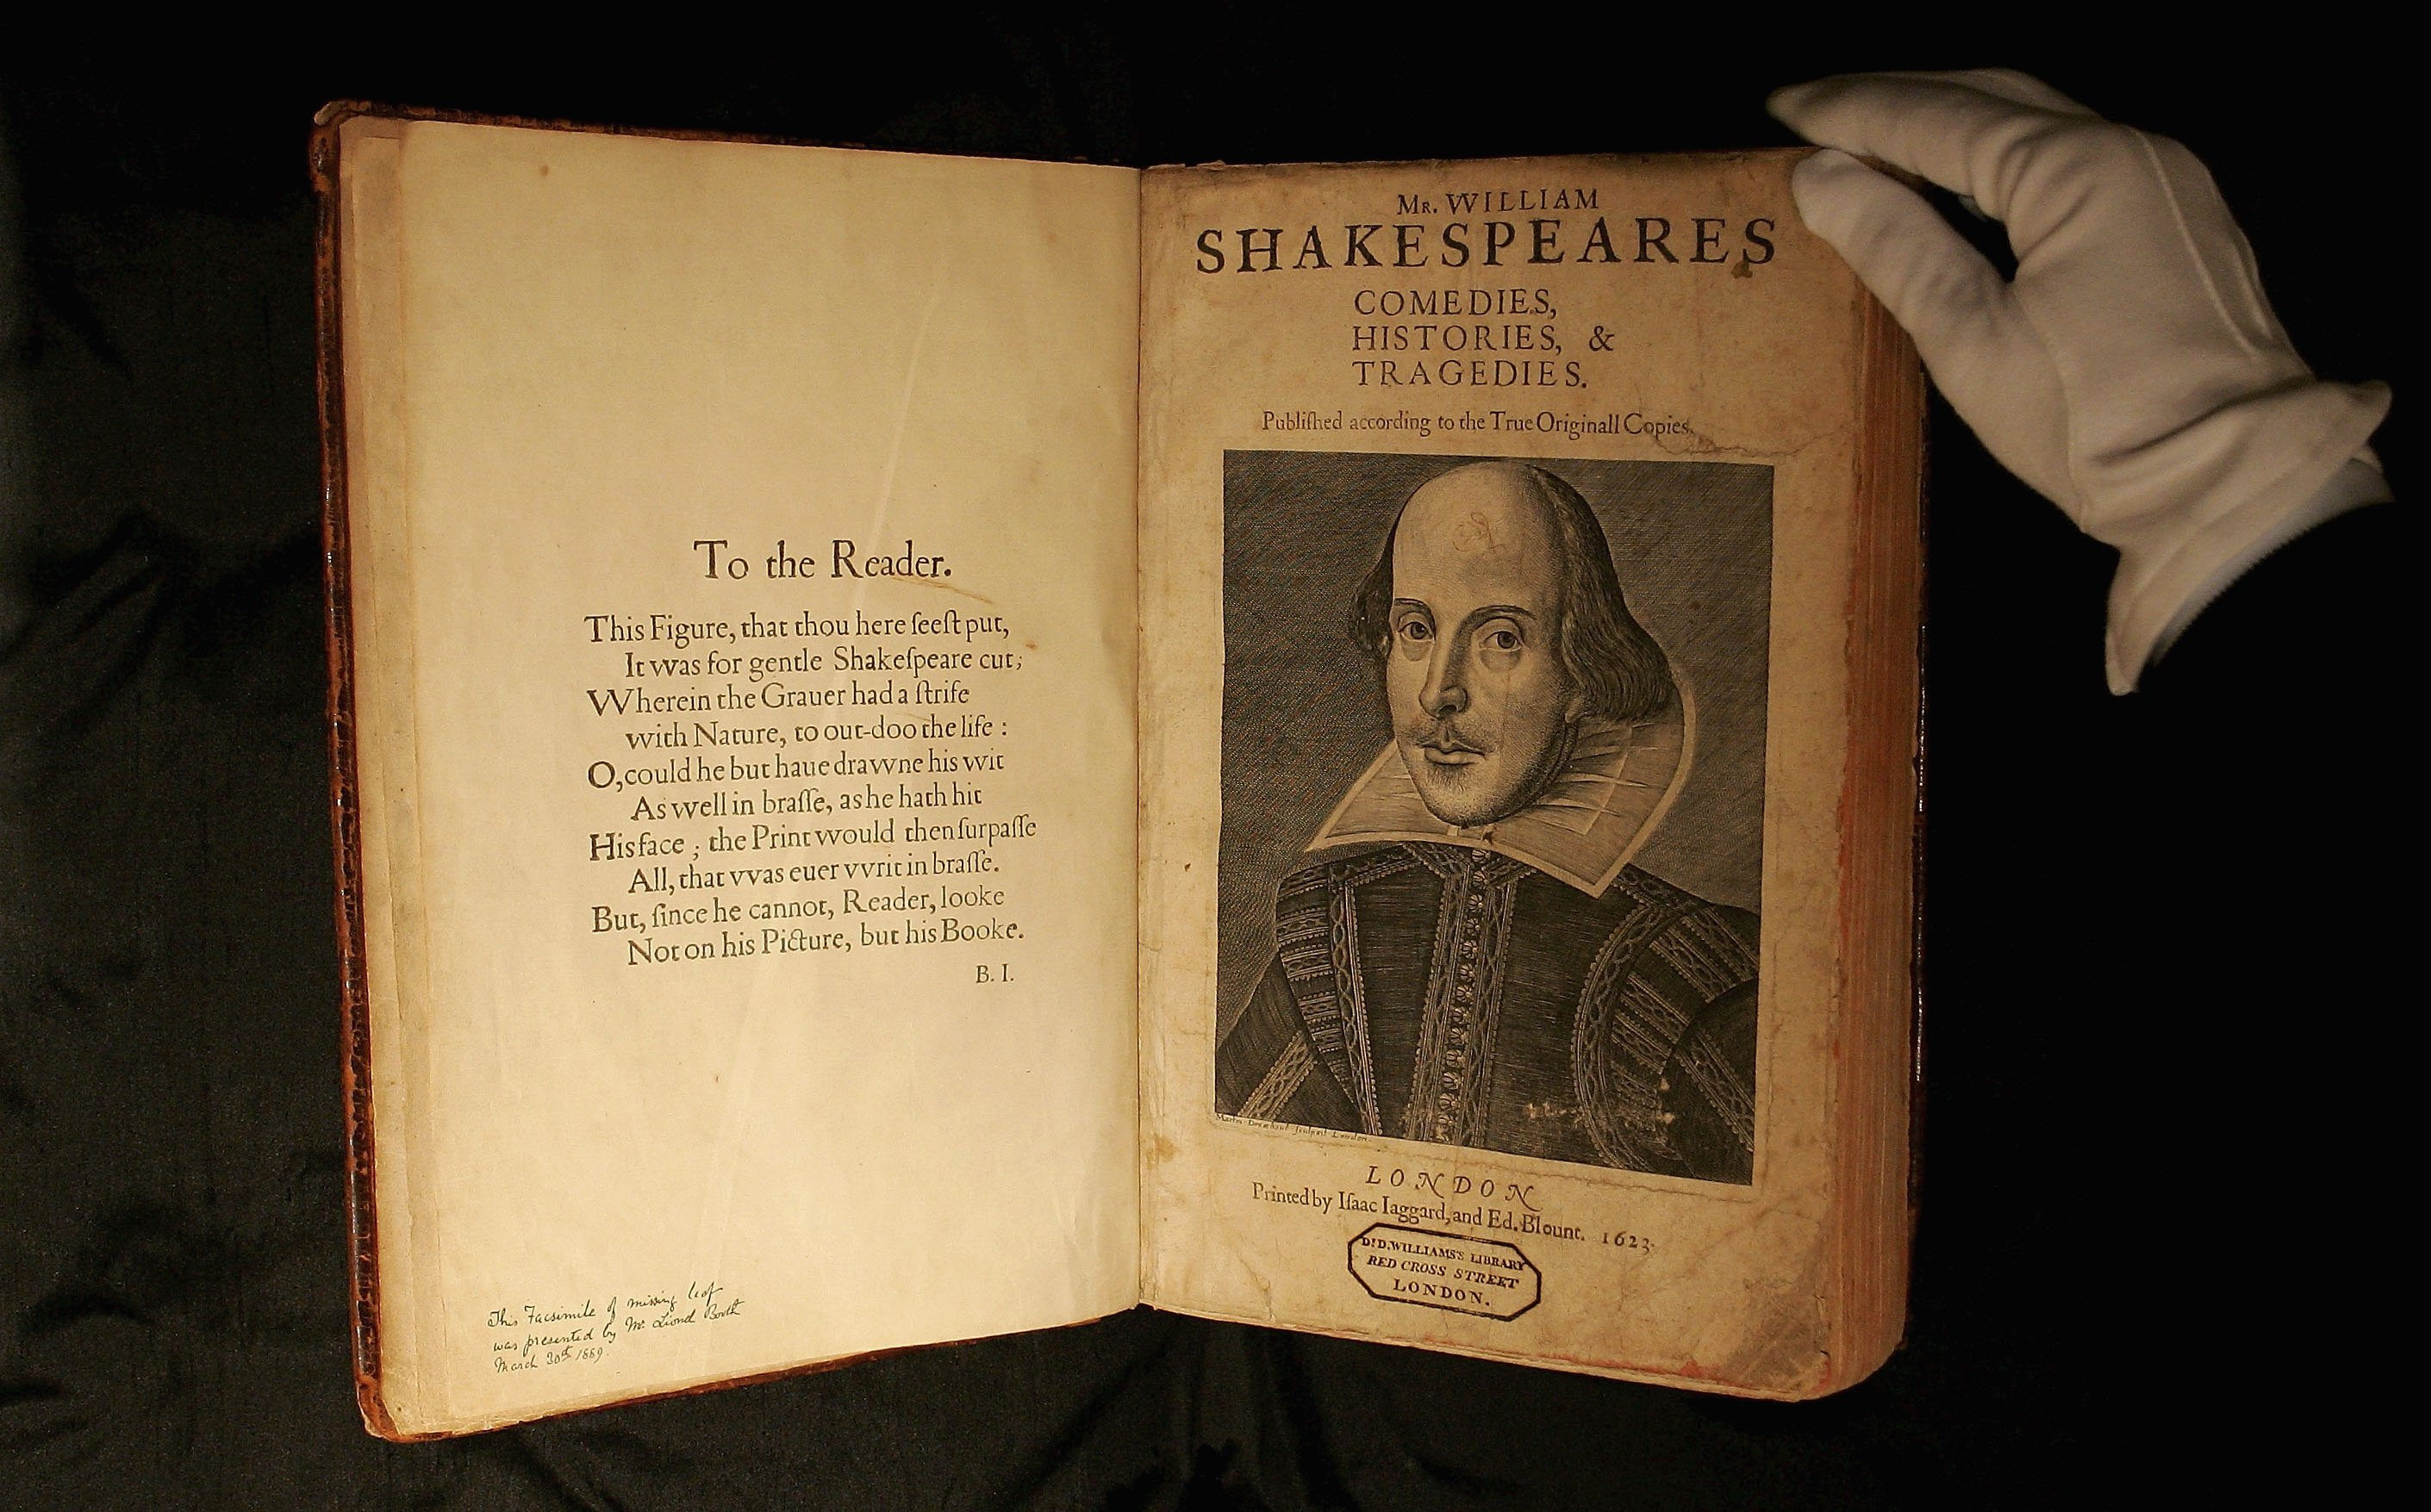 william shakespeare born apr 23 1564 com william shakespeare news